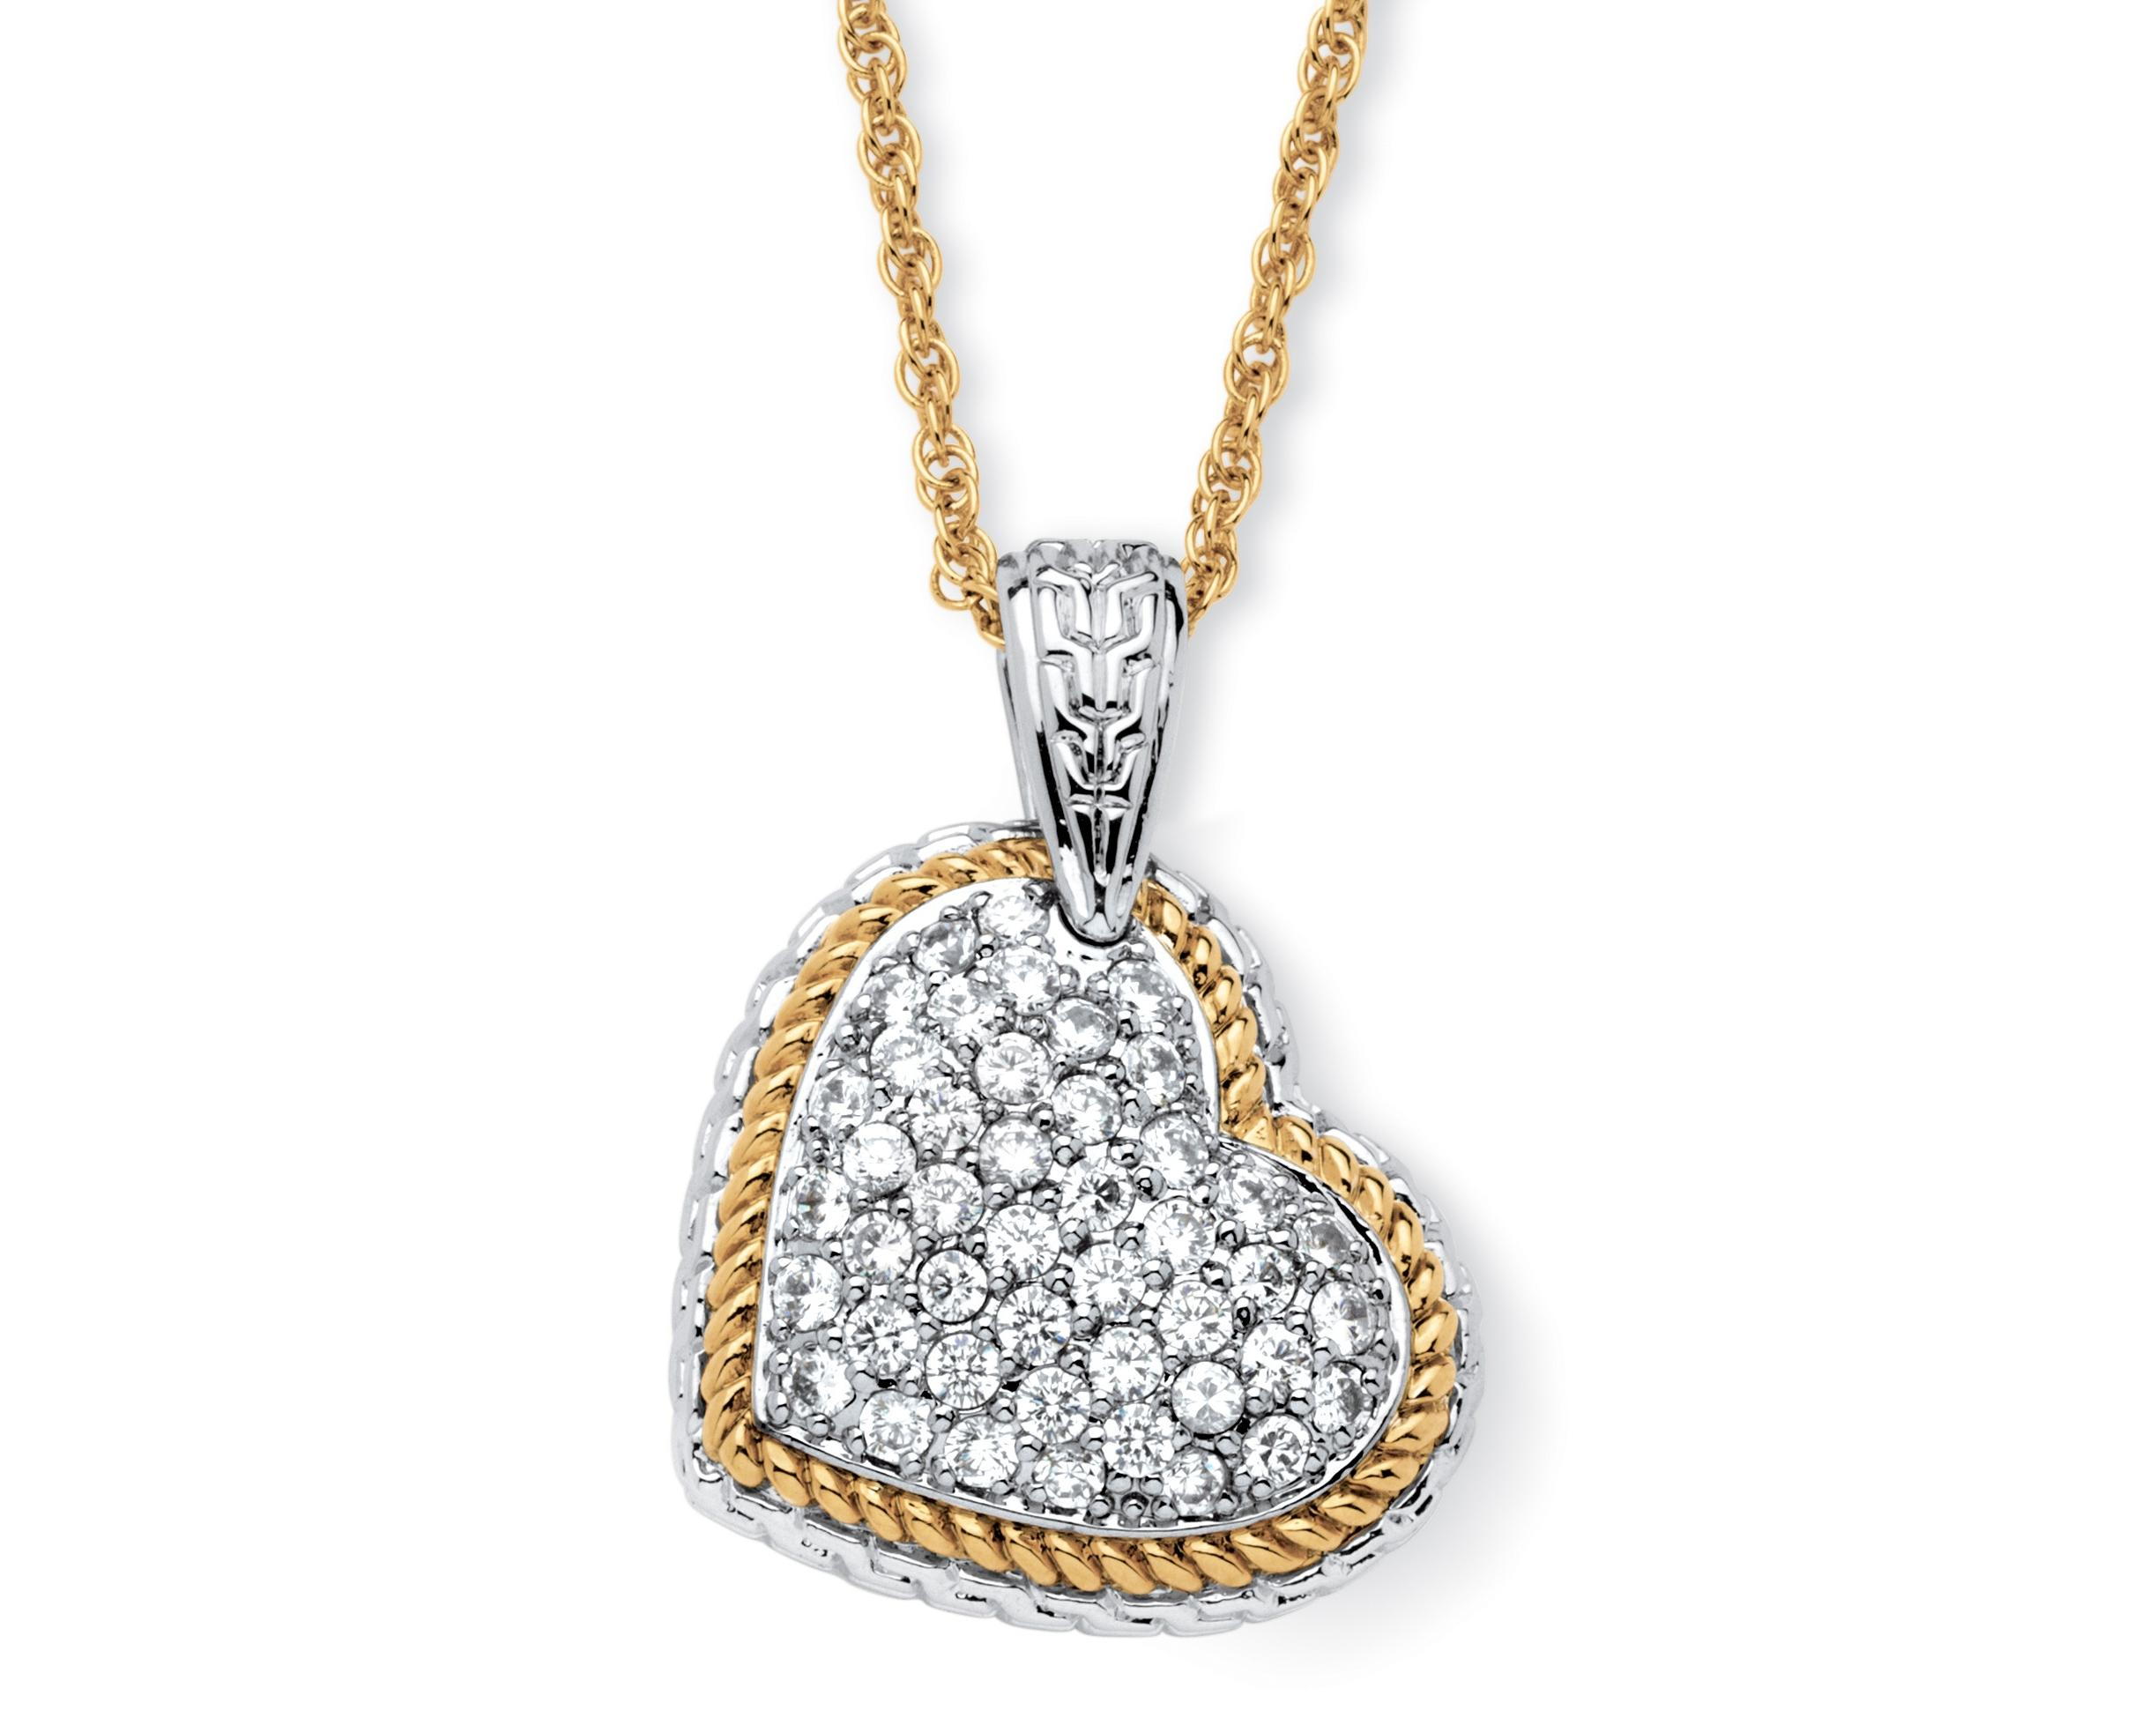 PalmBeach Jewelry 18k Gold-Plated Cubic Zirconia Two-Tone Puffed Heart Necklace